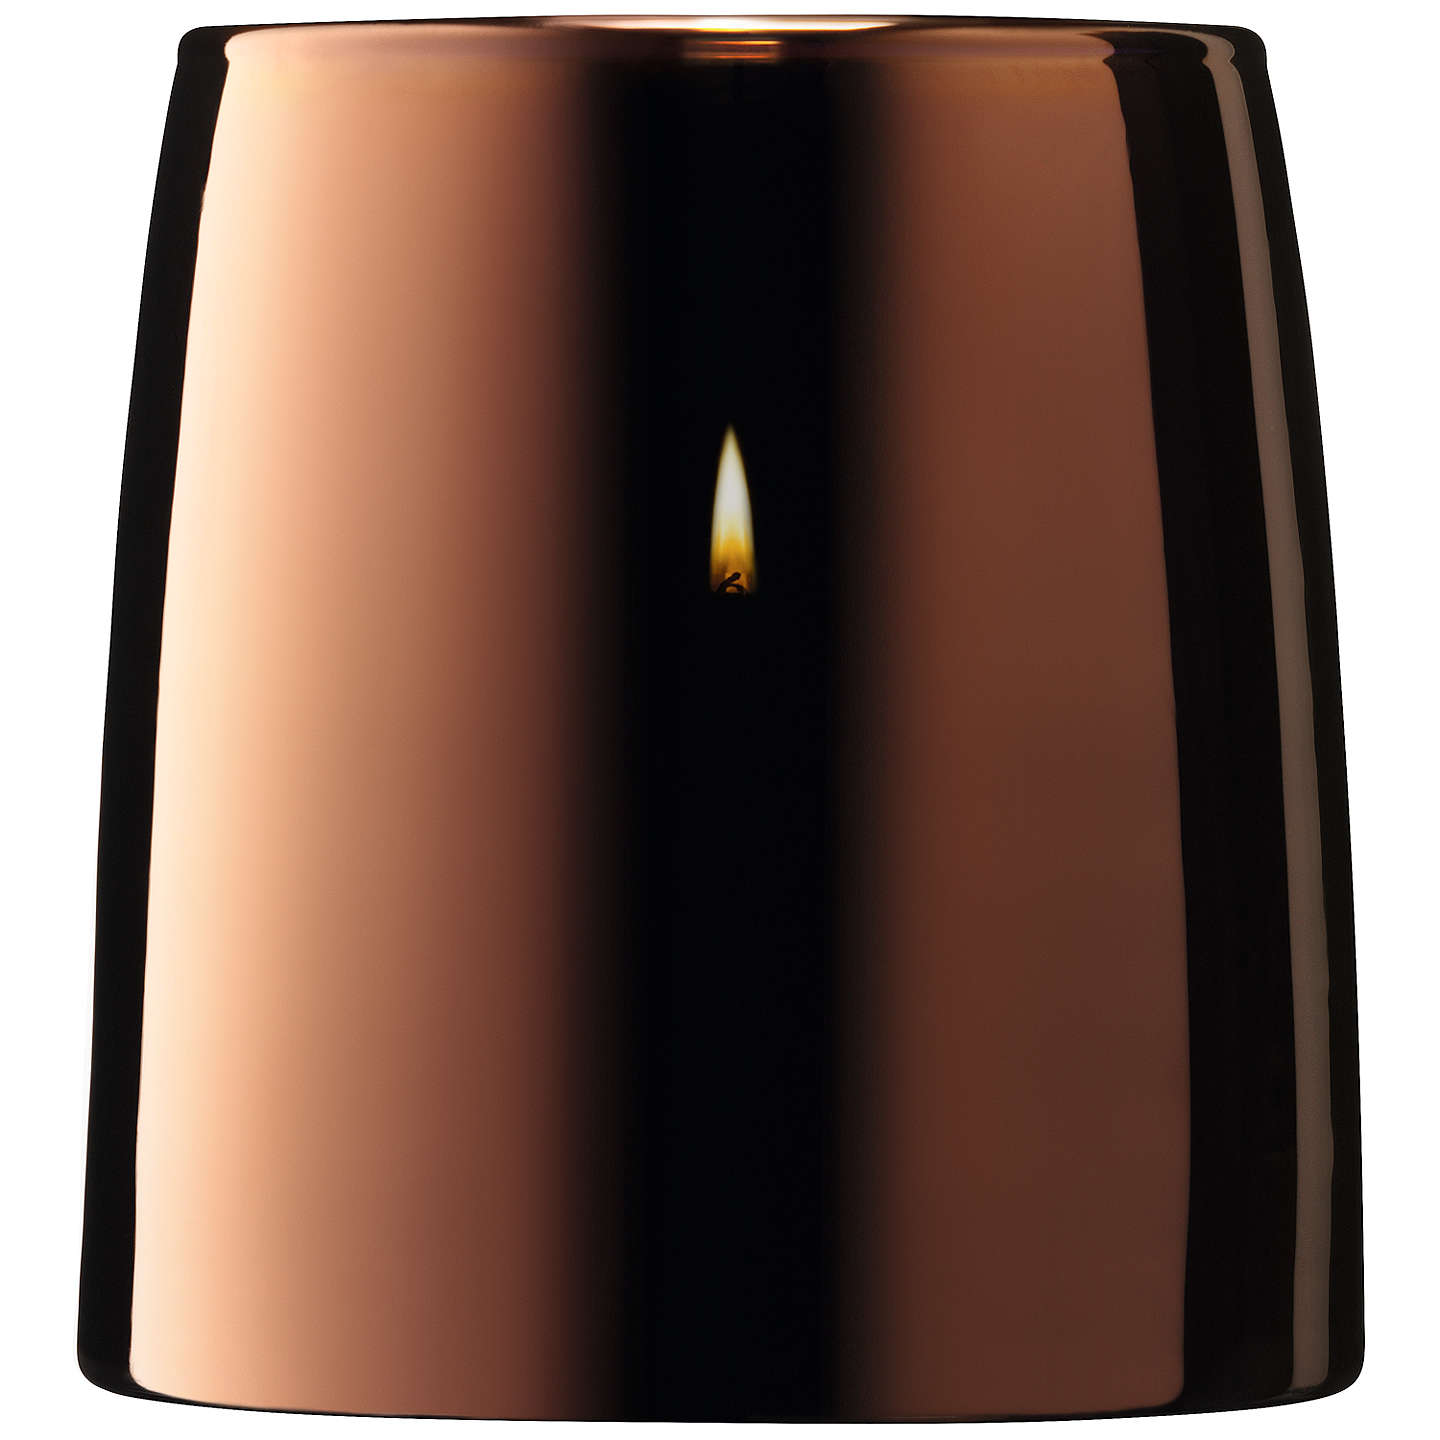 BuyLSA International Metallic Storm Lantern, Copper Online at johnlewis.com